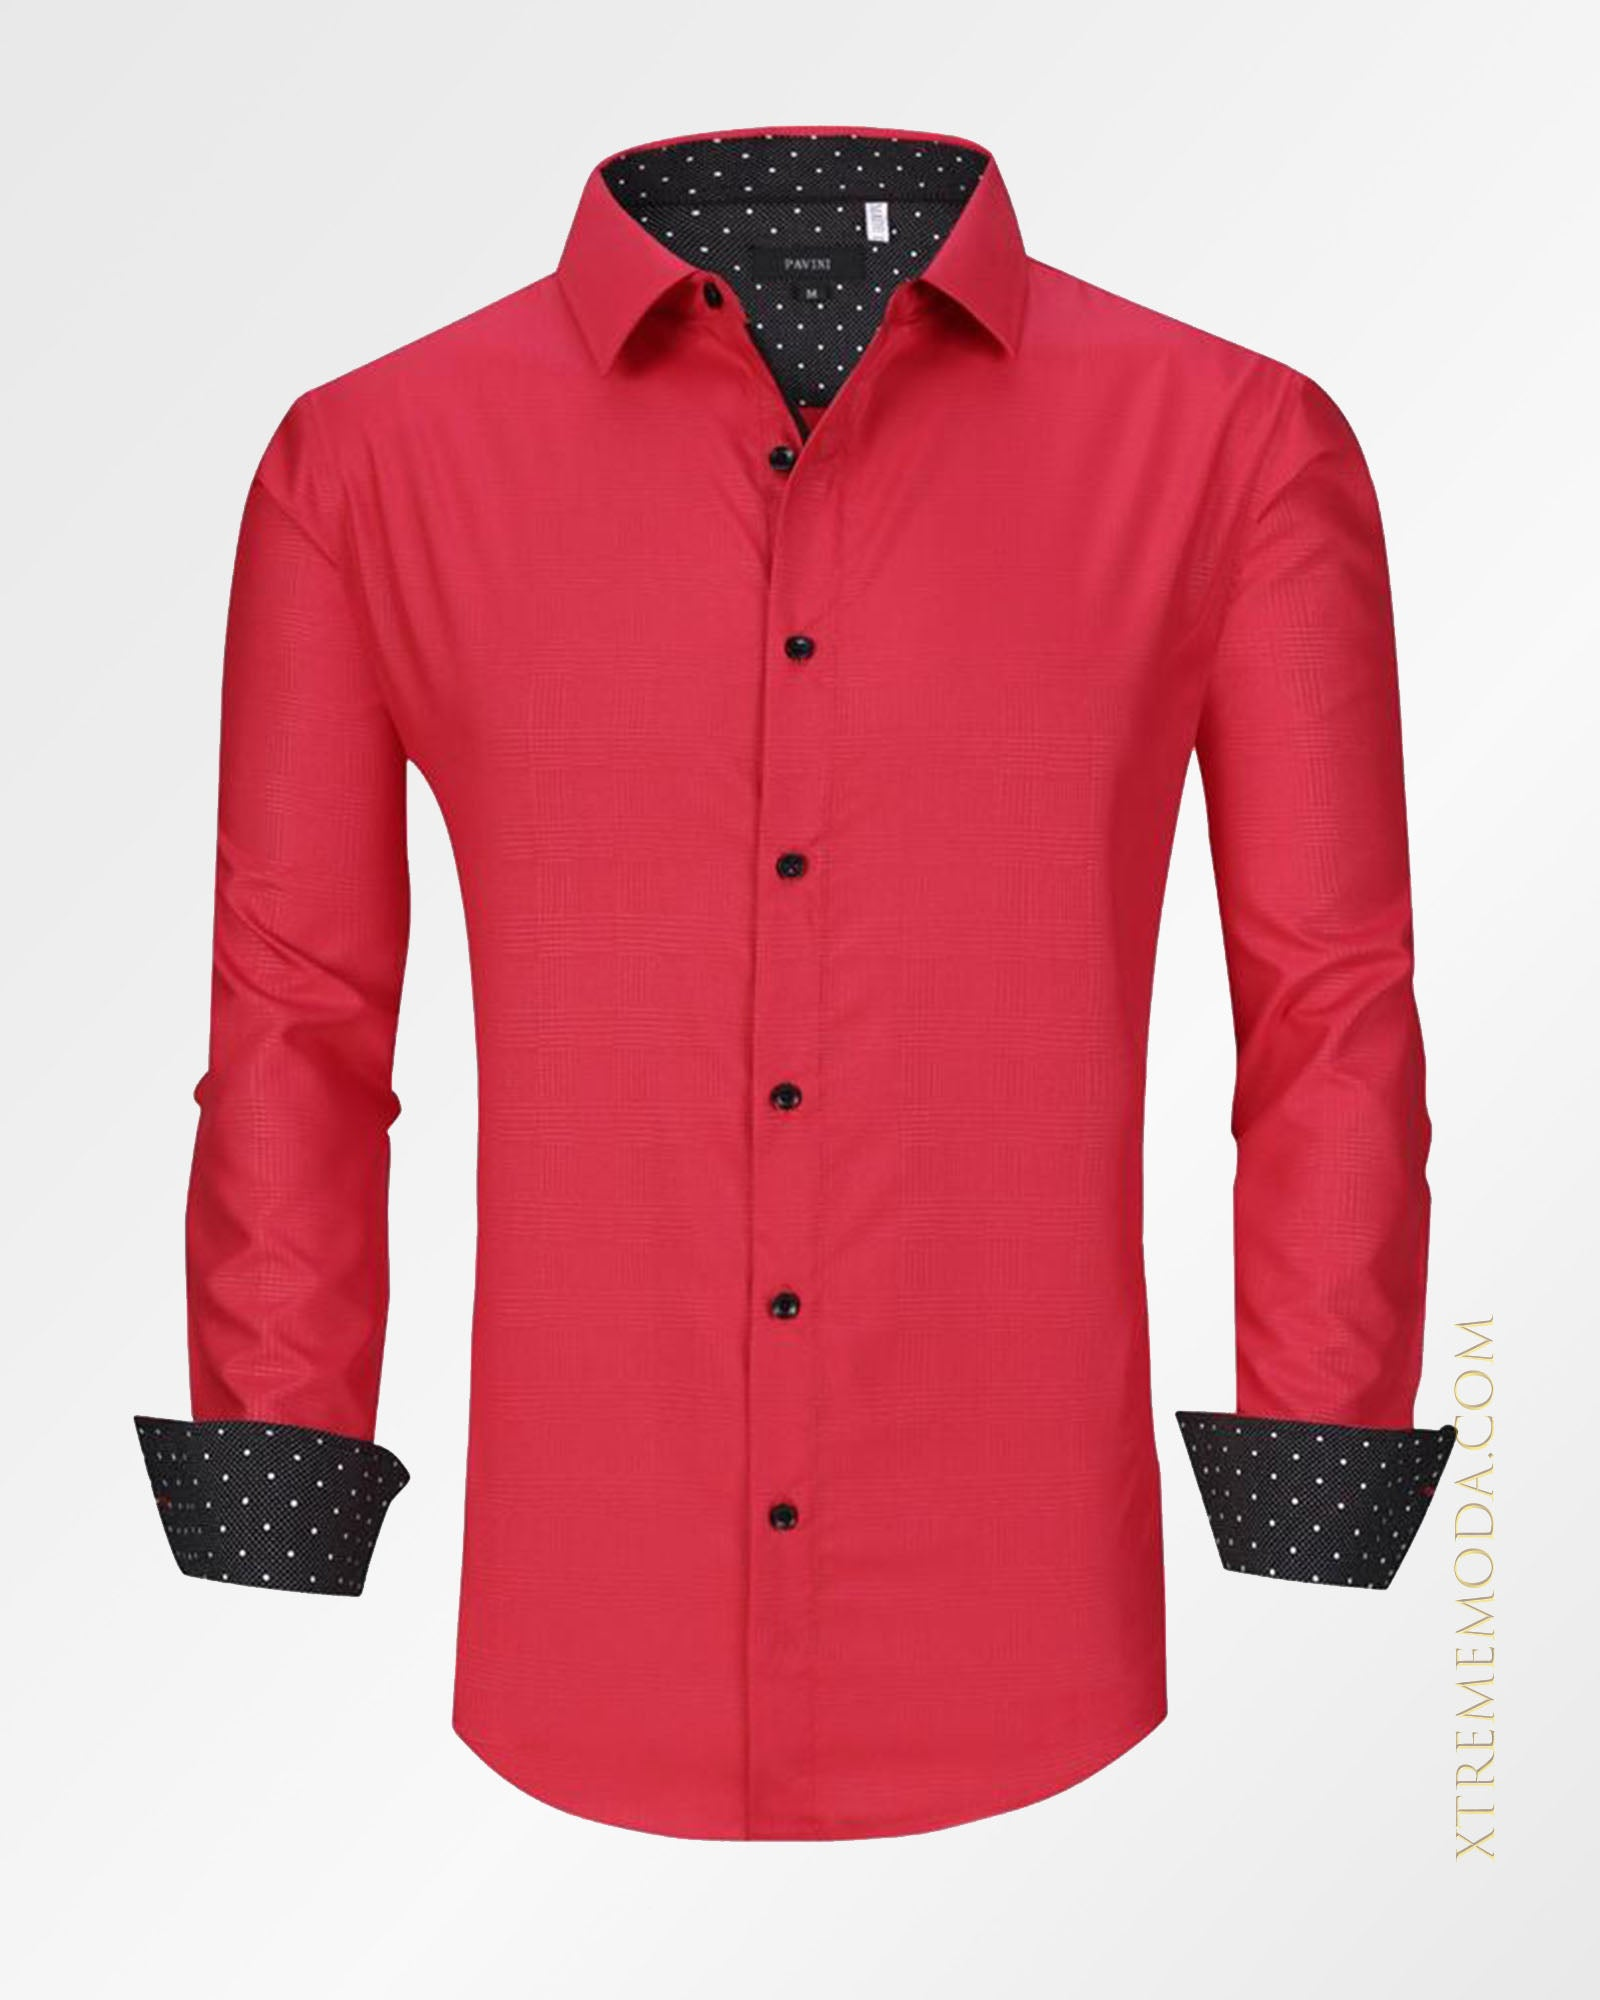 Silky style fashion shirt  Red